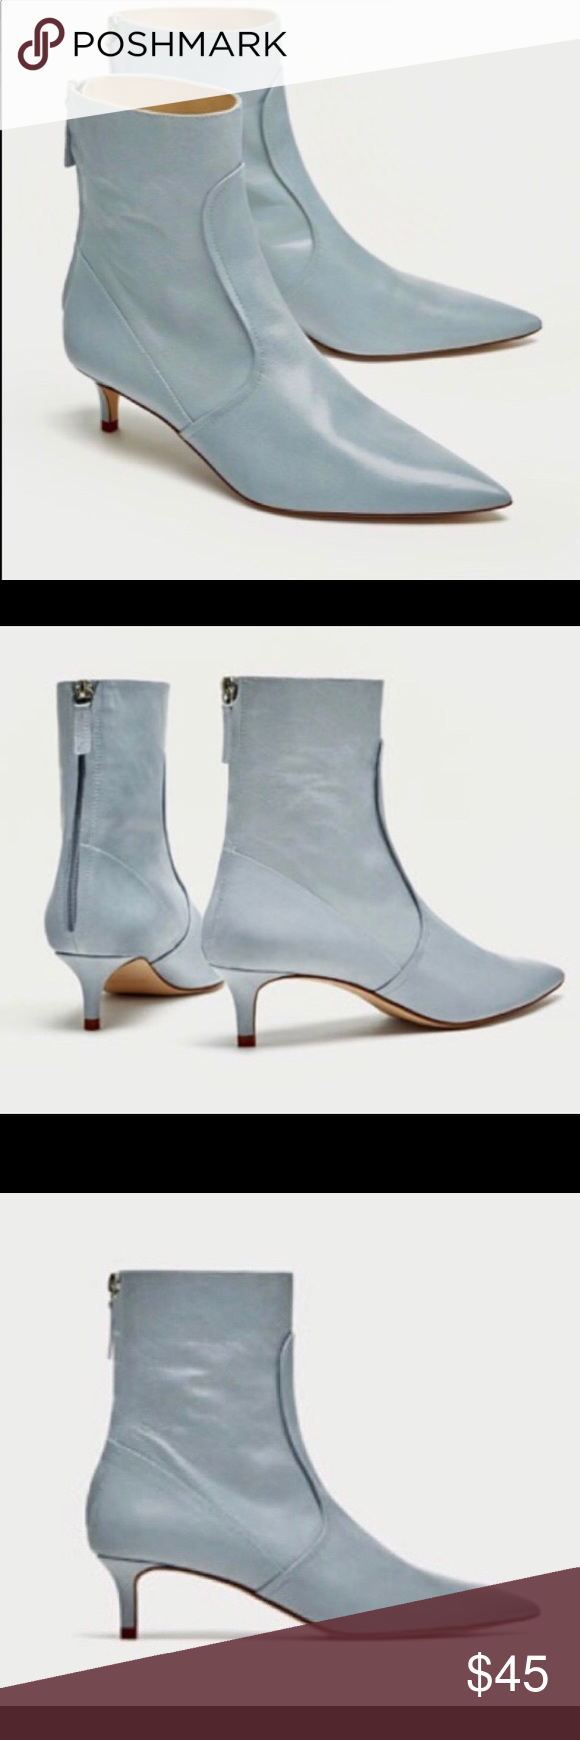 d9eff27a995 ZARA mid heel blue real LEATHER ankle boots,9,NWT brand new ith tag ...